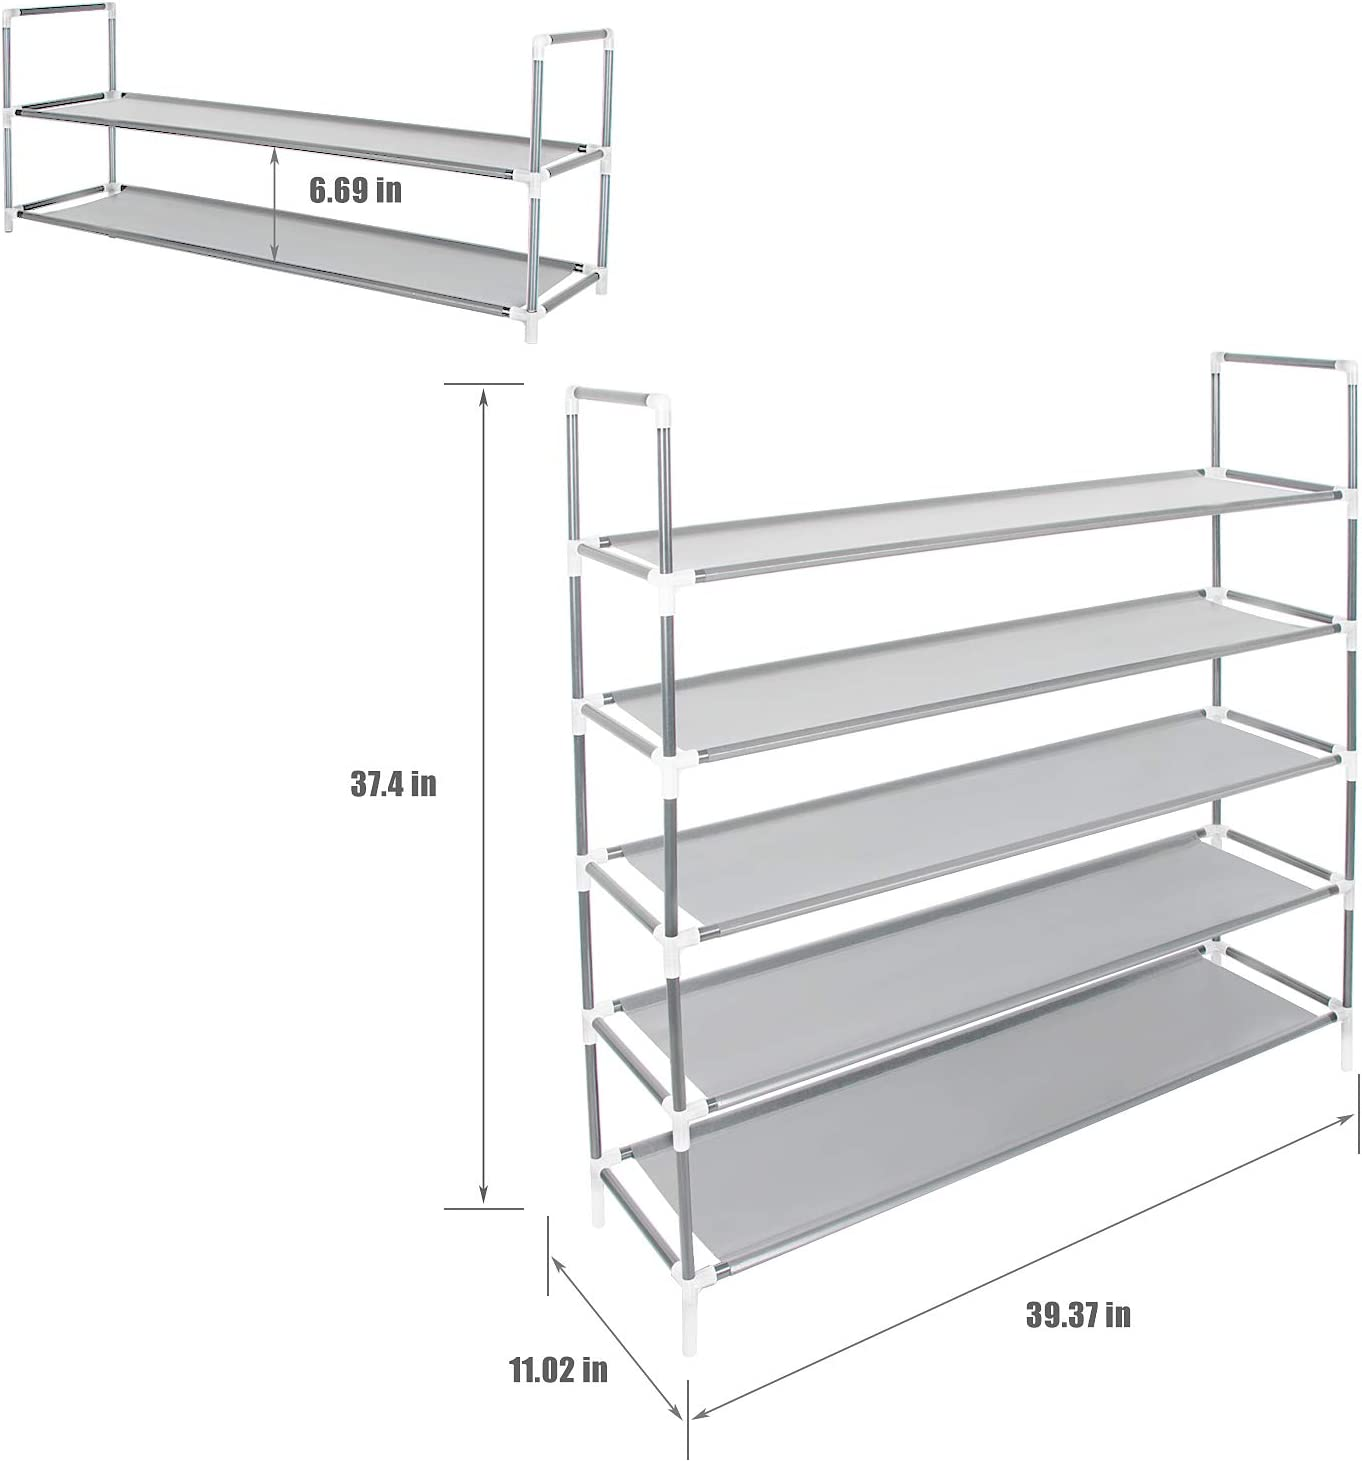 Space-Saving Shoes Cabinet Closet Organizer 39 L Holds 20-25 Pair of Shoes Grey Azadx 5 Tiers Shoe Rack Free Standing Non-Woven Fabric Shoe Tower Storage Organizer